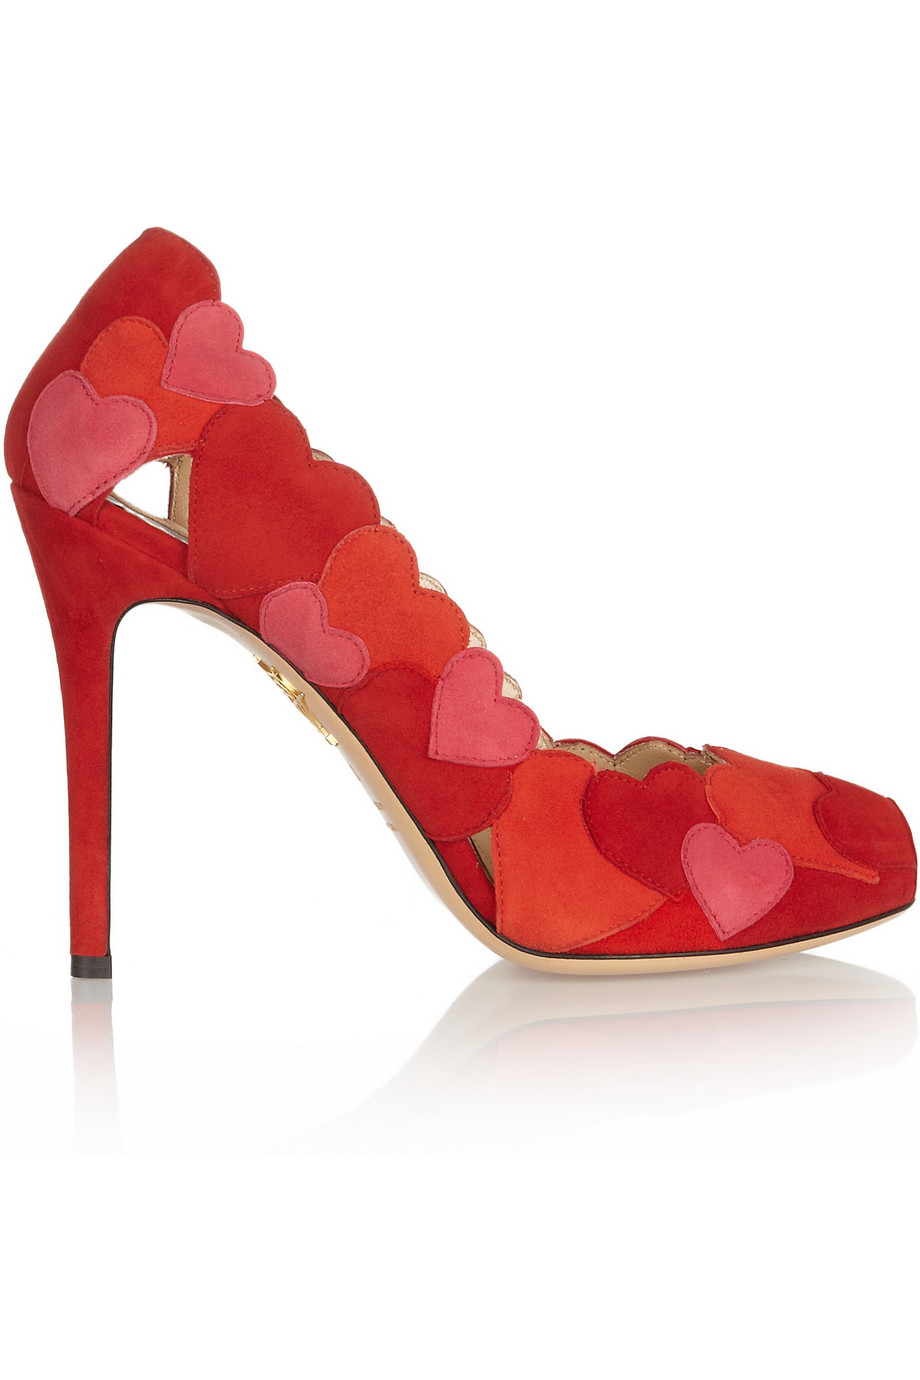 Charlotte Olympia Love Me Heart-Appliquéd Suede Pumps, Red, Women's US Size: 3.5, Size: 34